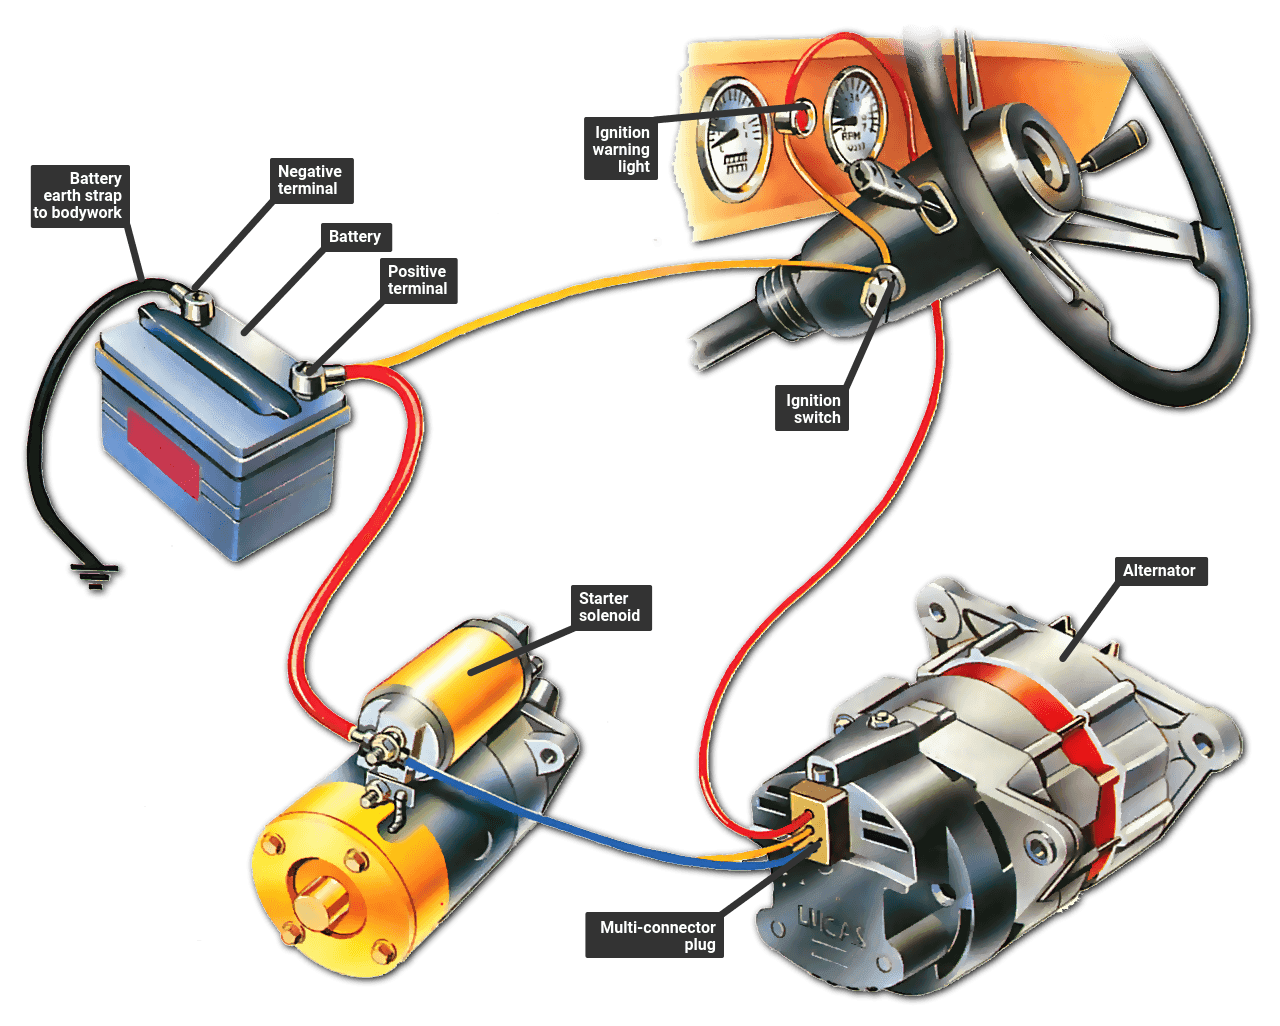 Troubleshooting The Ignition Warning Light How A Car Works 2007 Mustang Switch Wiring Diagram